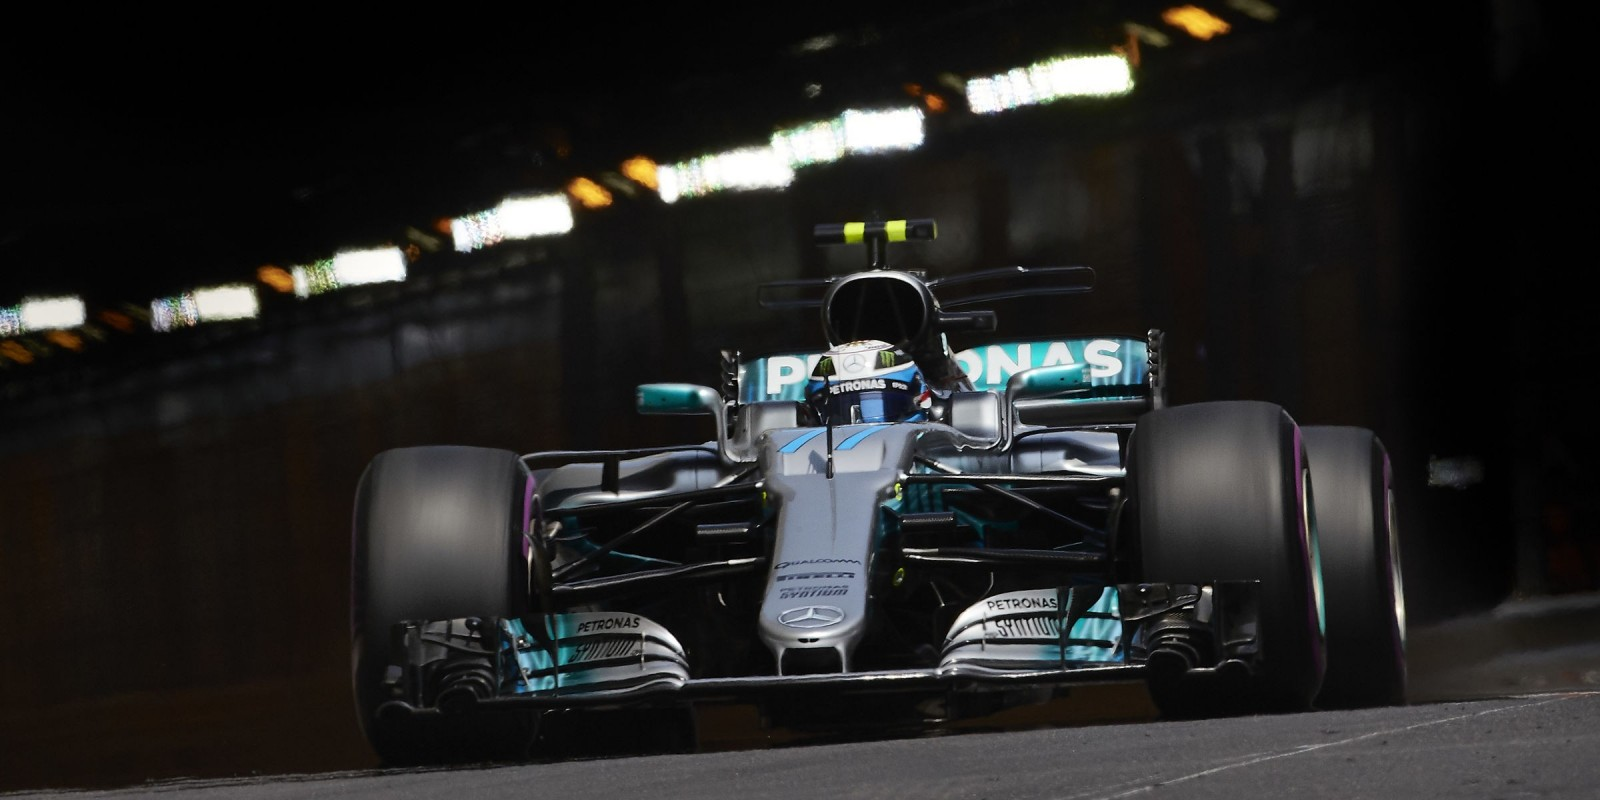 Qualifying images from the 2017 Monaco Grand Prix